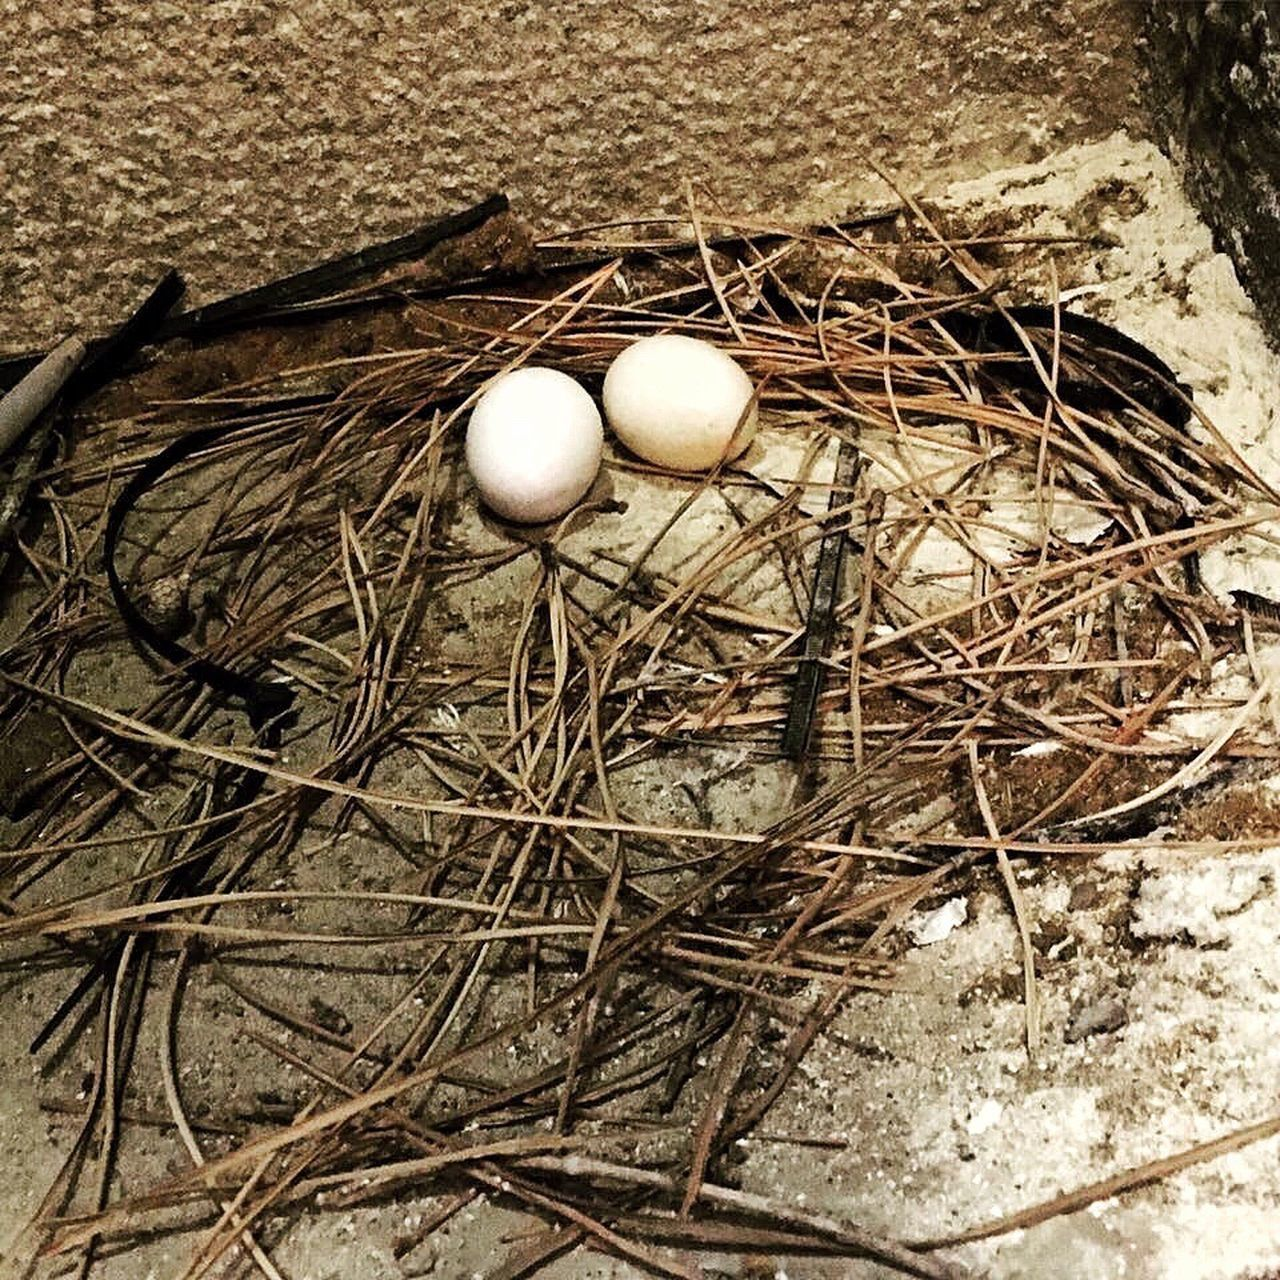 egg, animal nest, animal egg, bird nest, high angle view, no people, day, new life, fragility, close-up, outdoors, nature, food, bird, freshness